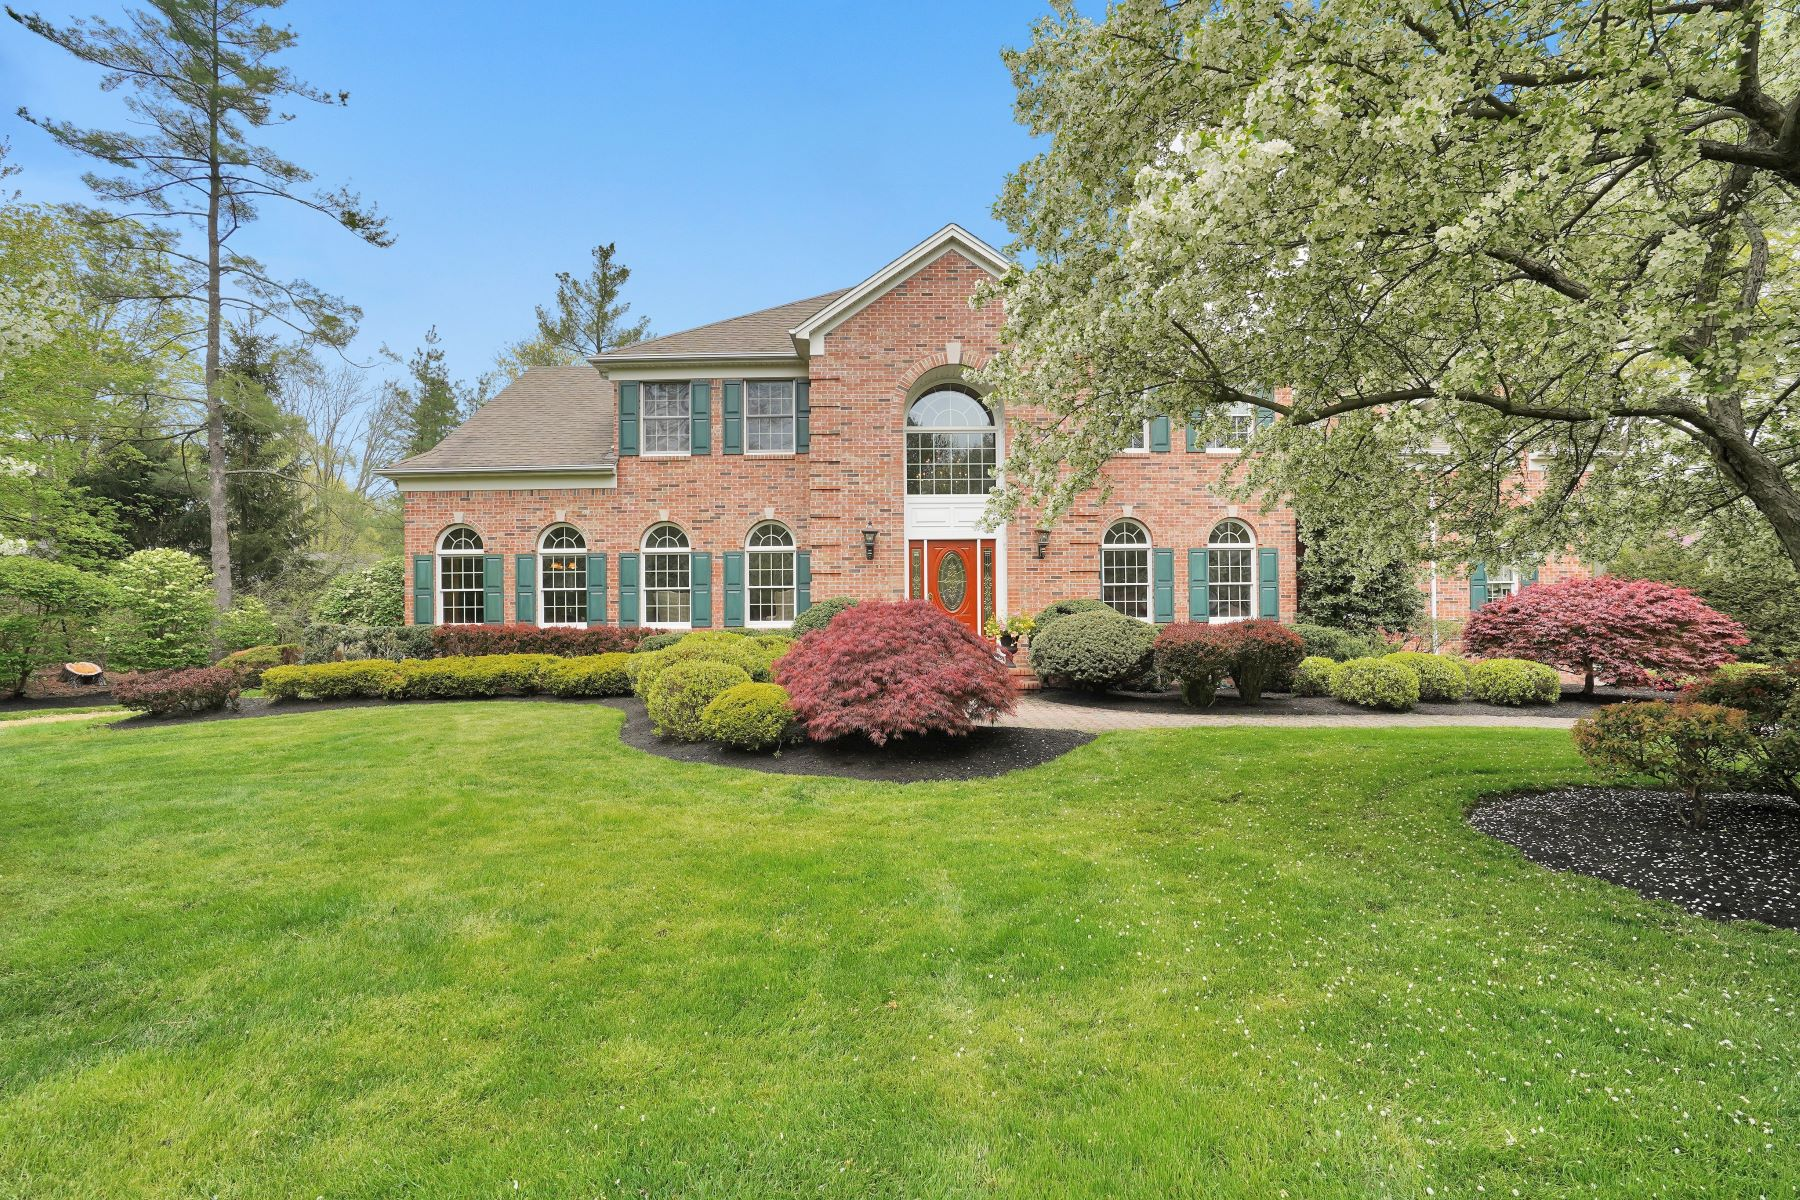 Single Family Home for Sale at Stately Residence 21 Saint Nickolas Way, Basking Ridge, New Jersey 07920 United States